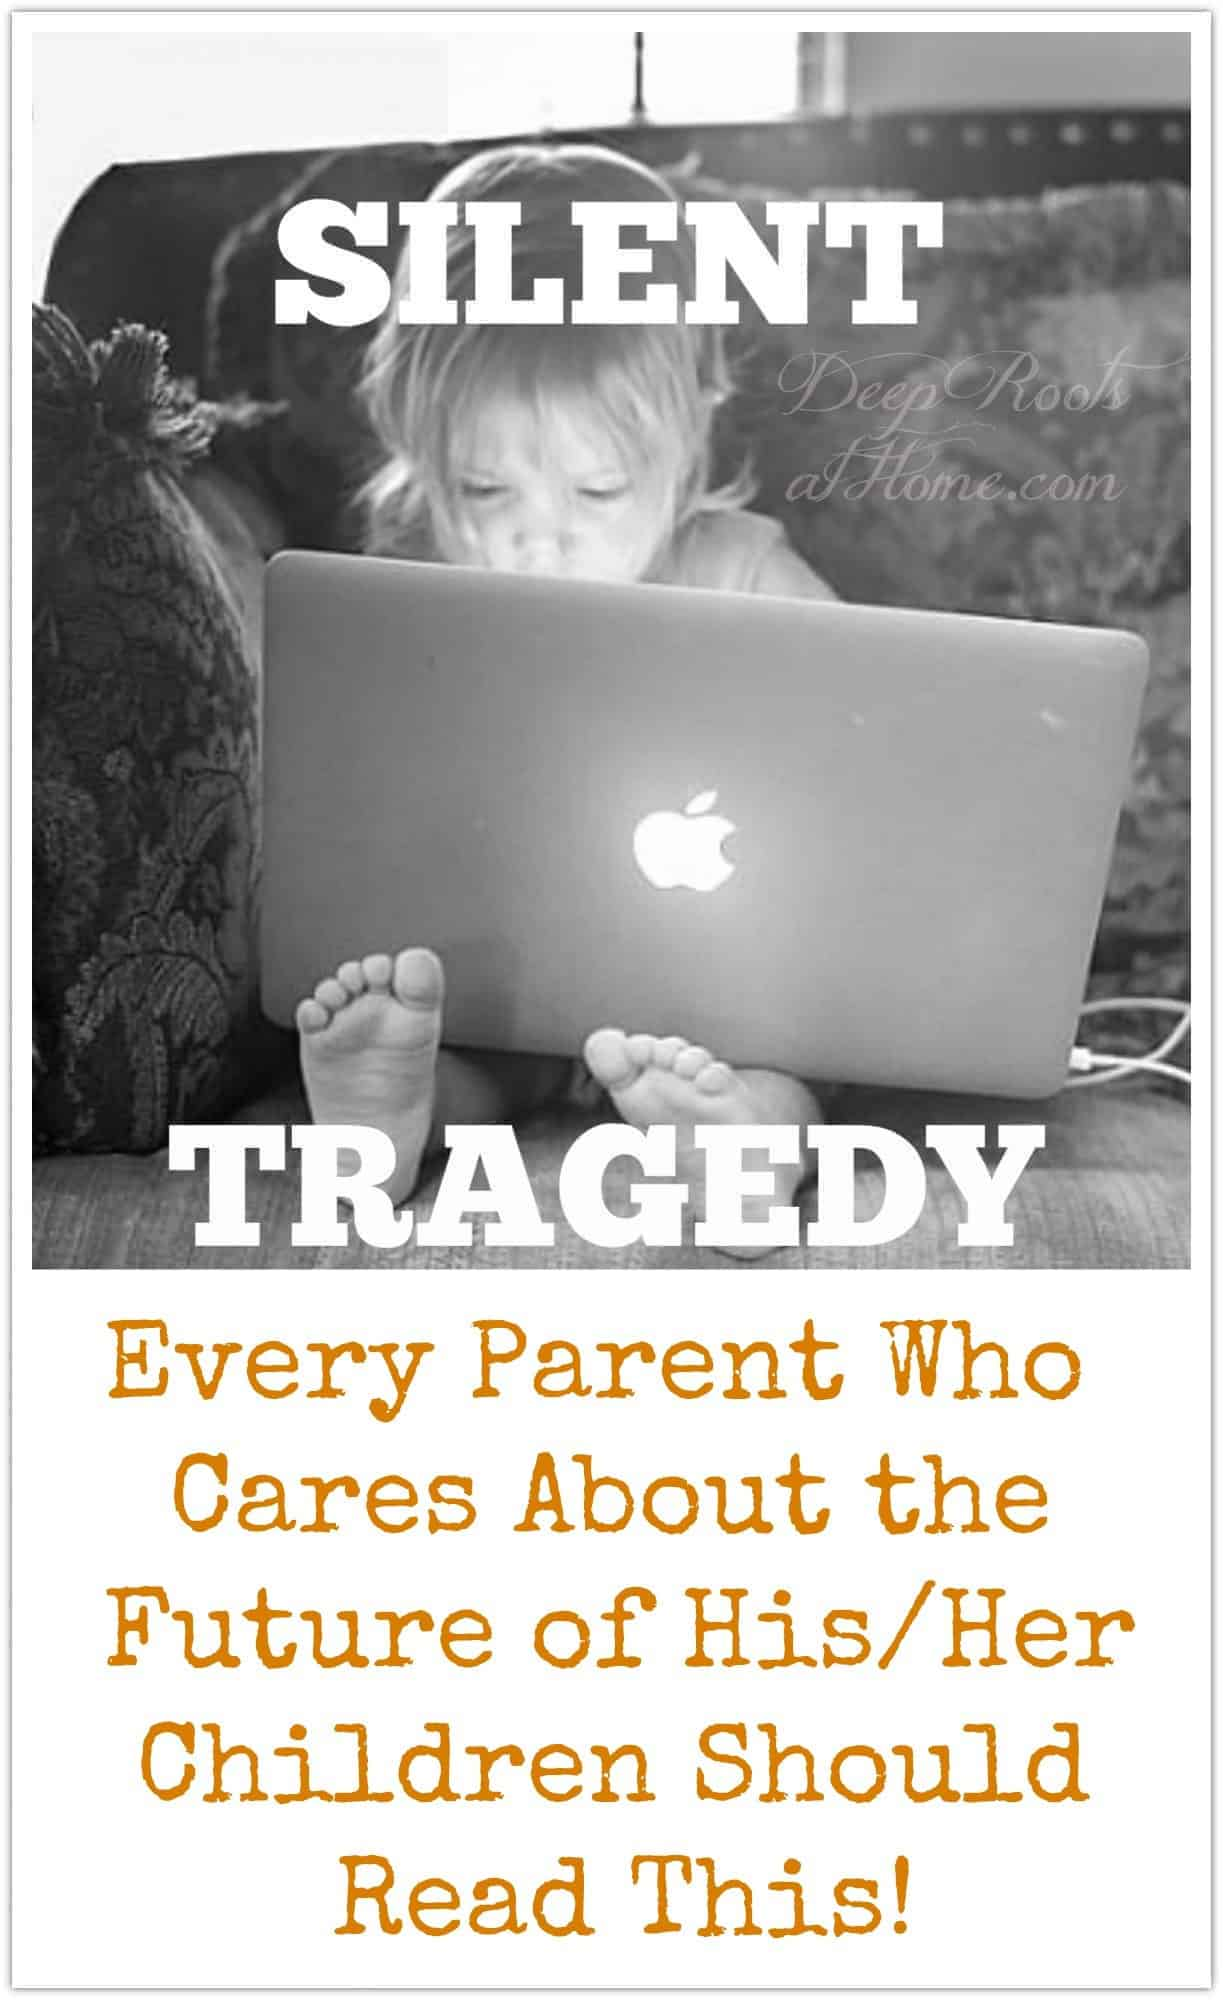 Child Harm, the Silent Tragedy: Every Parent who Cares Should Read This